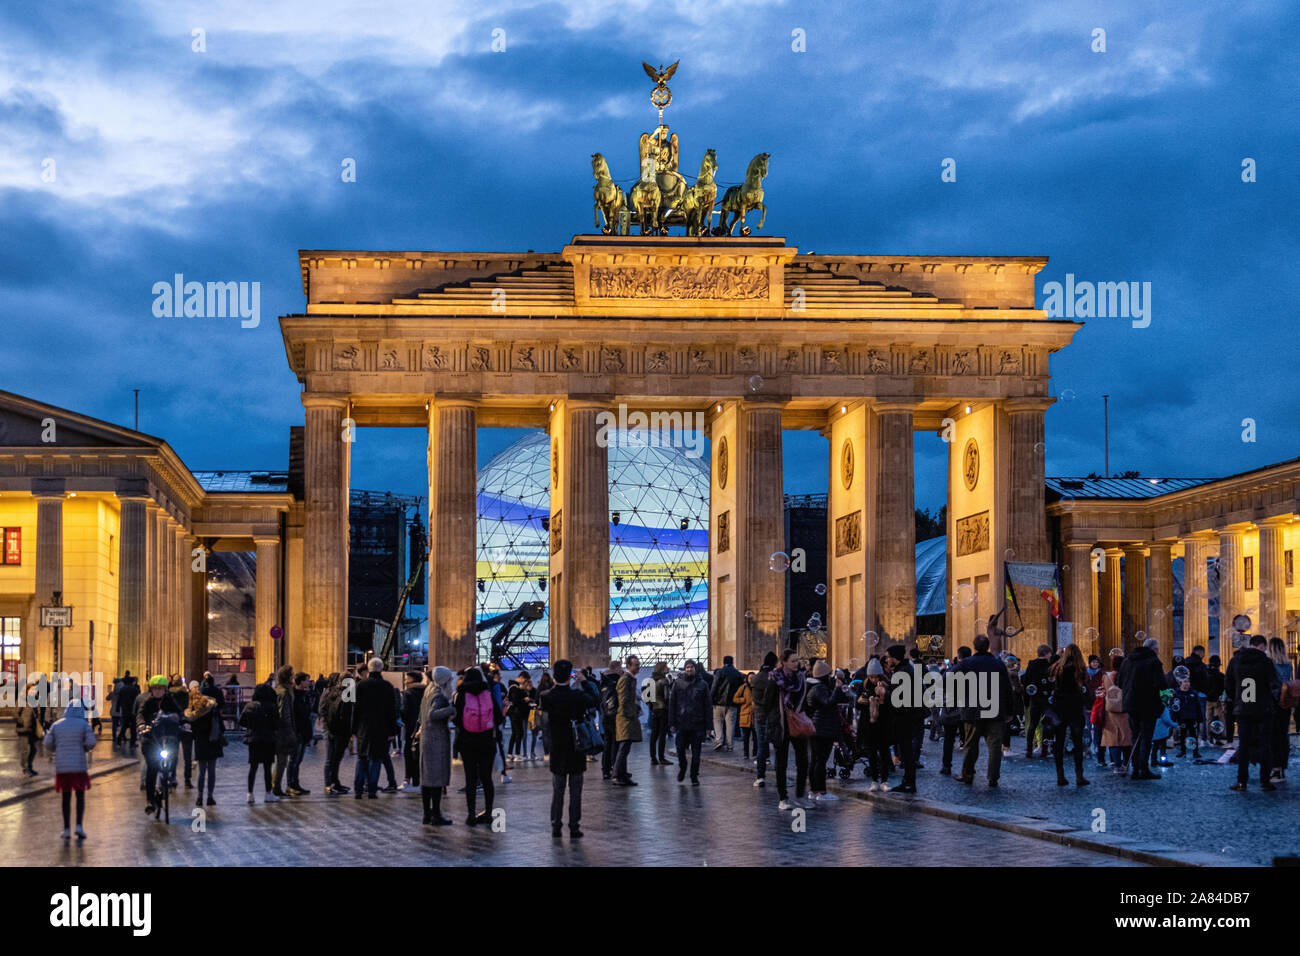 People collect at Brandenburger Tor to celebrate 30th Anniversary of the fall of the Berlin Wall, Pariser Platz, Mitte, Berlin, Germany Stock Photo